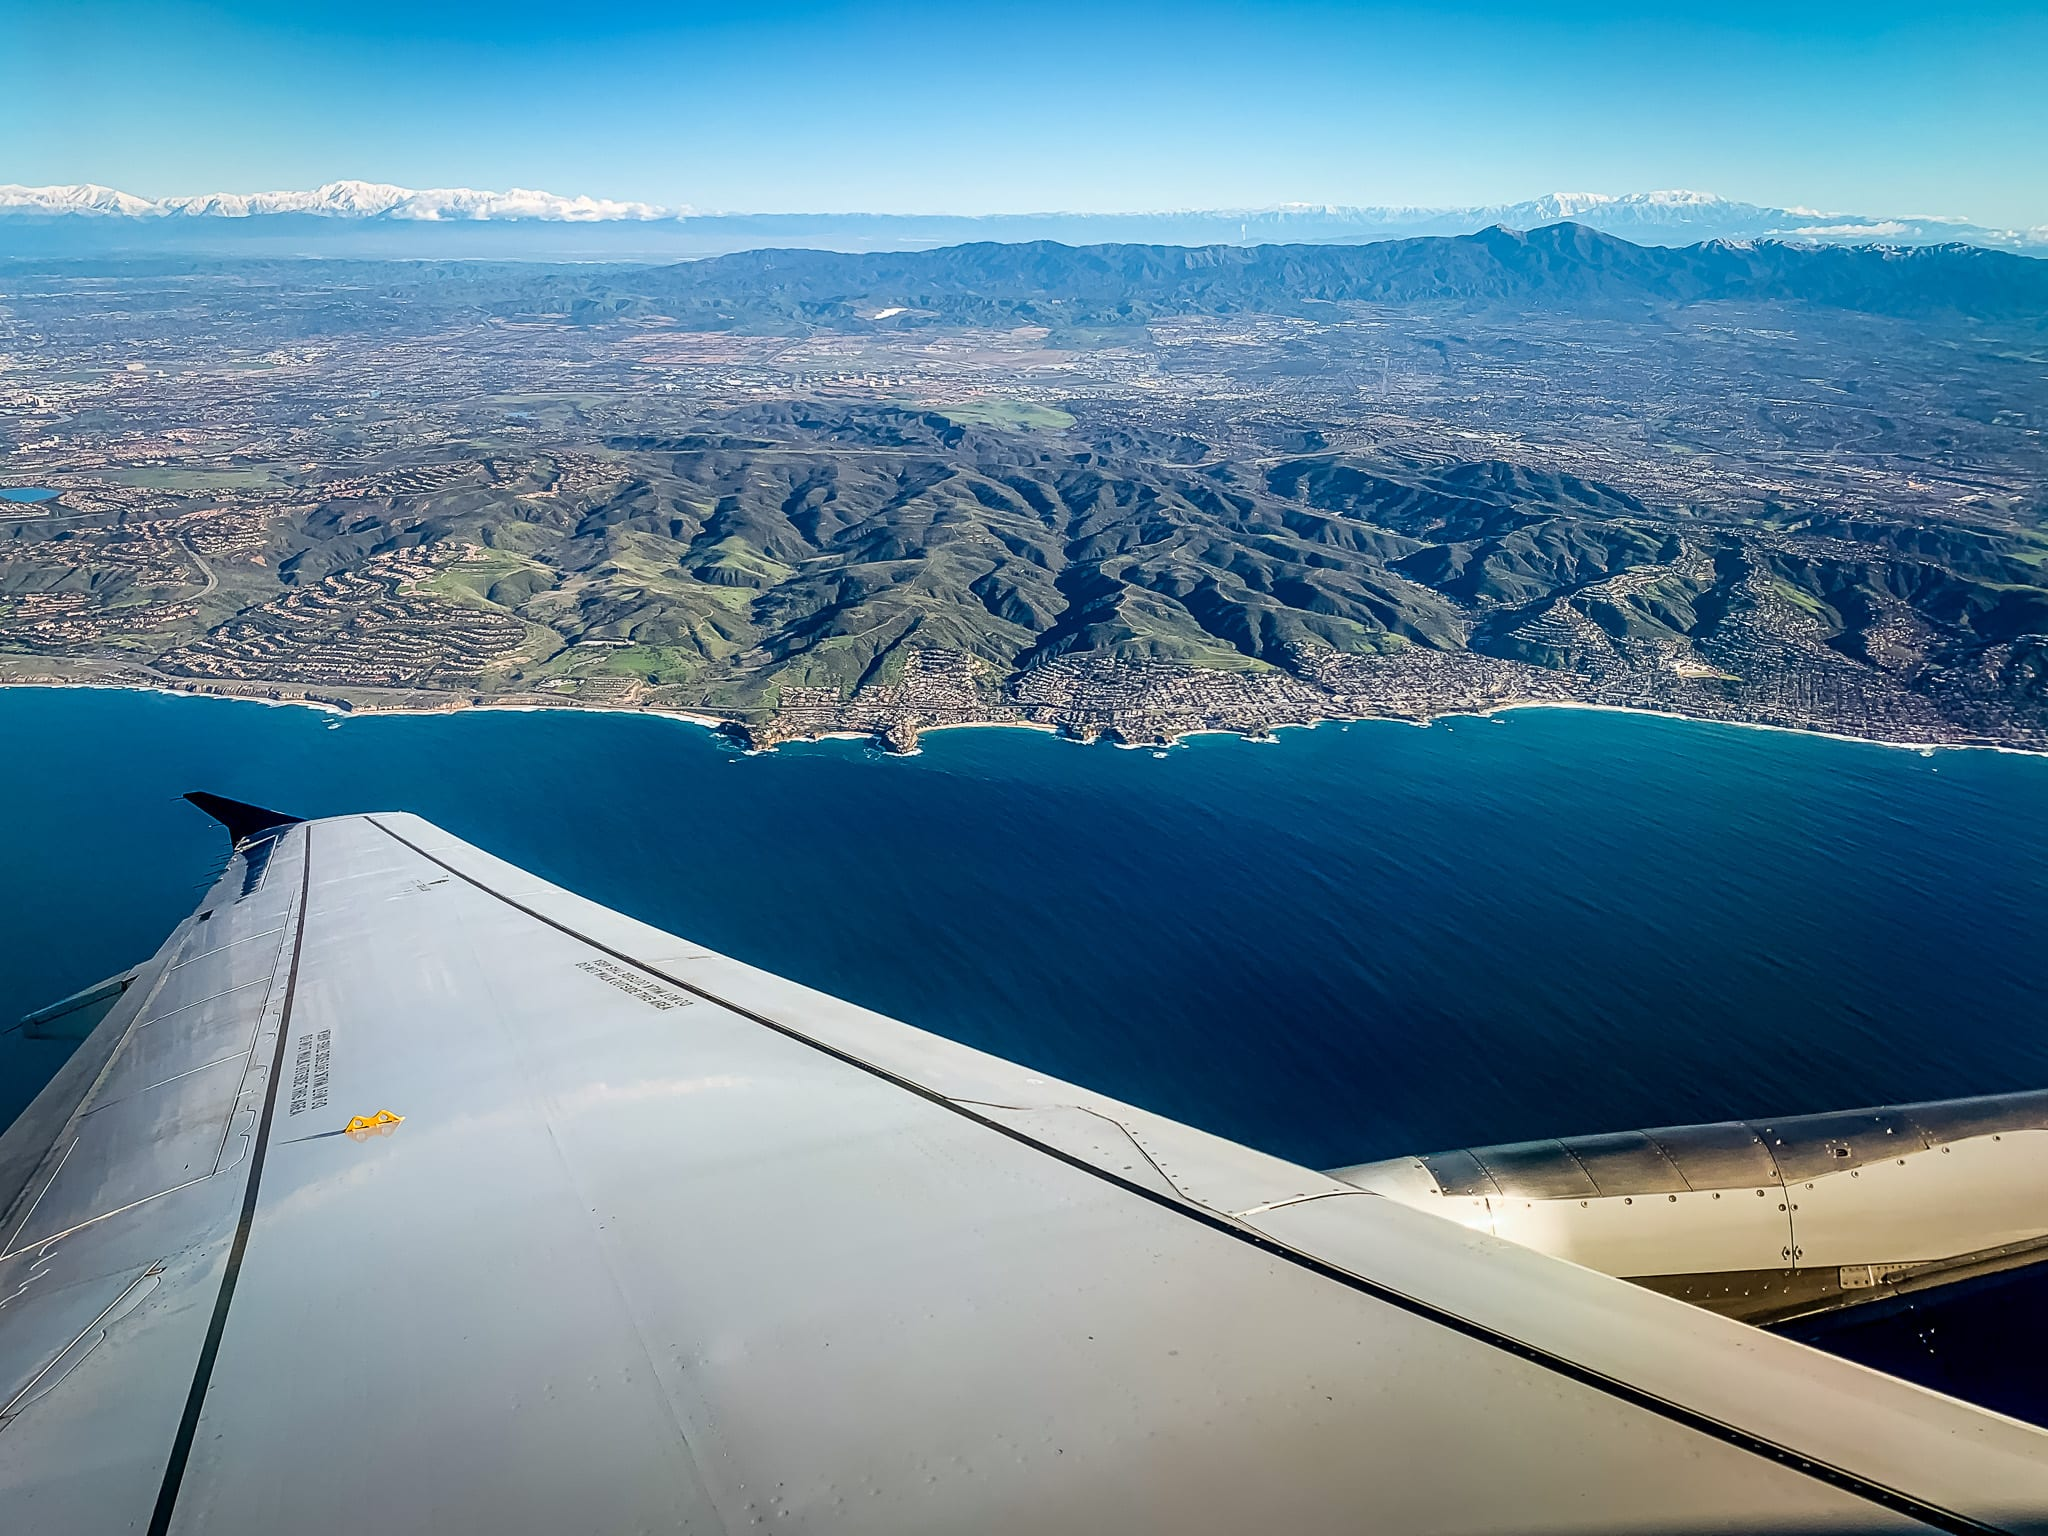 Aerial view of Laguna Beach from an airplane window giving an overview of the area and topography